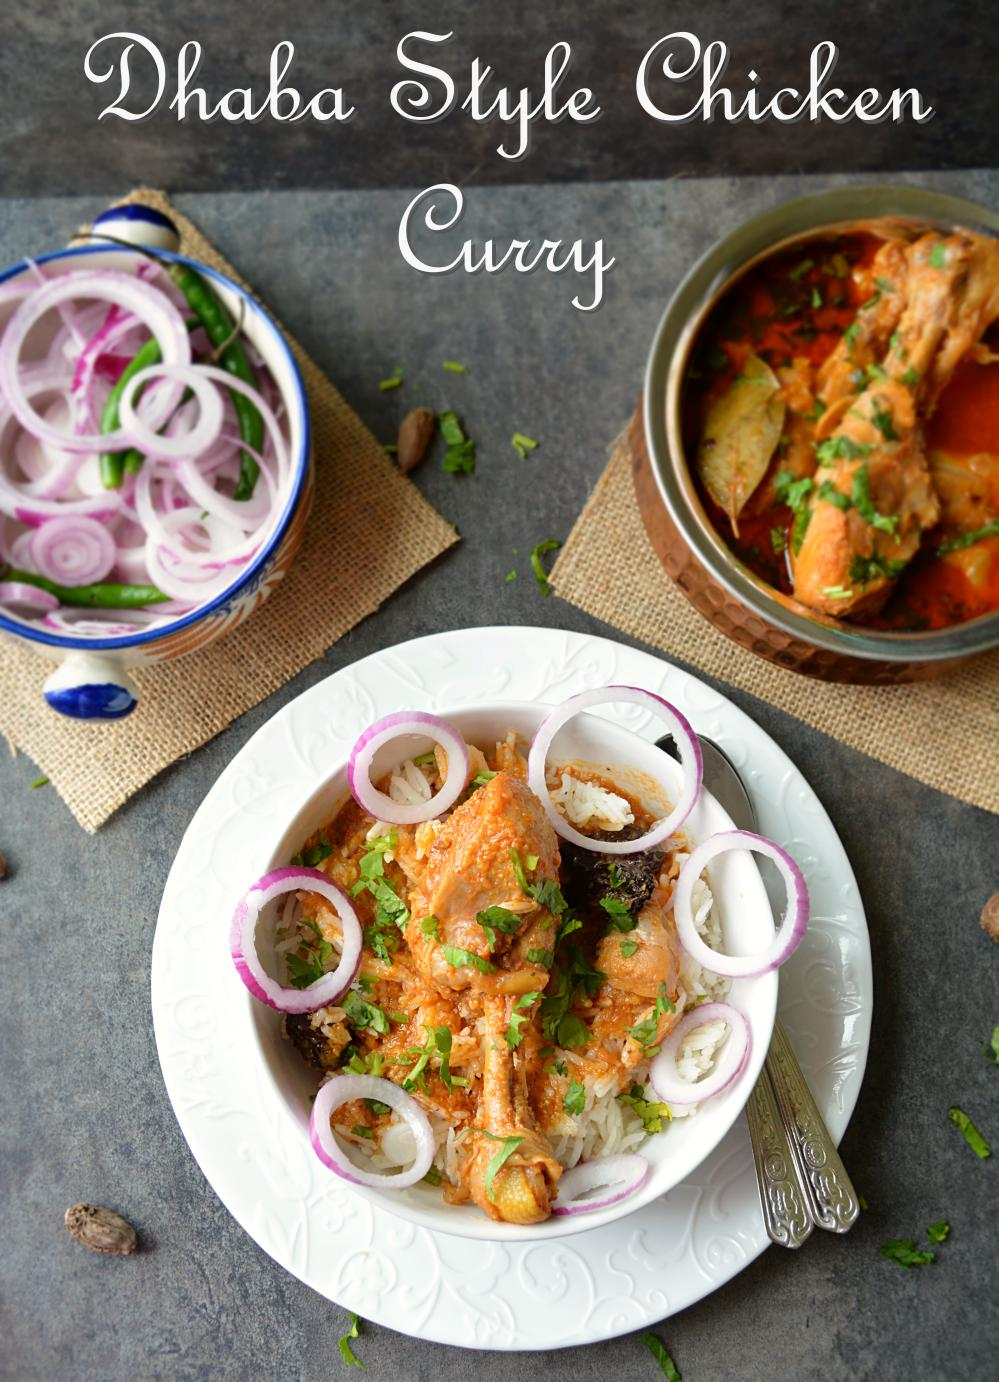 Dhaba style chicken curry